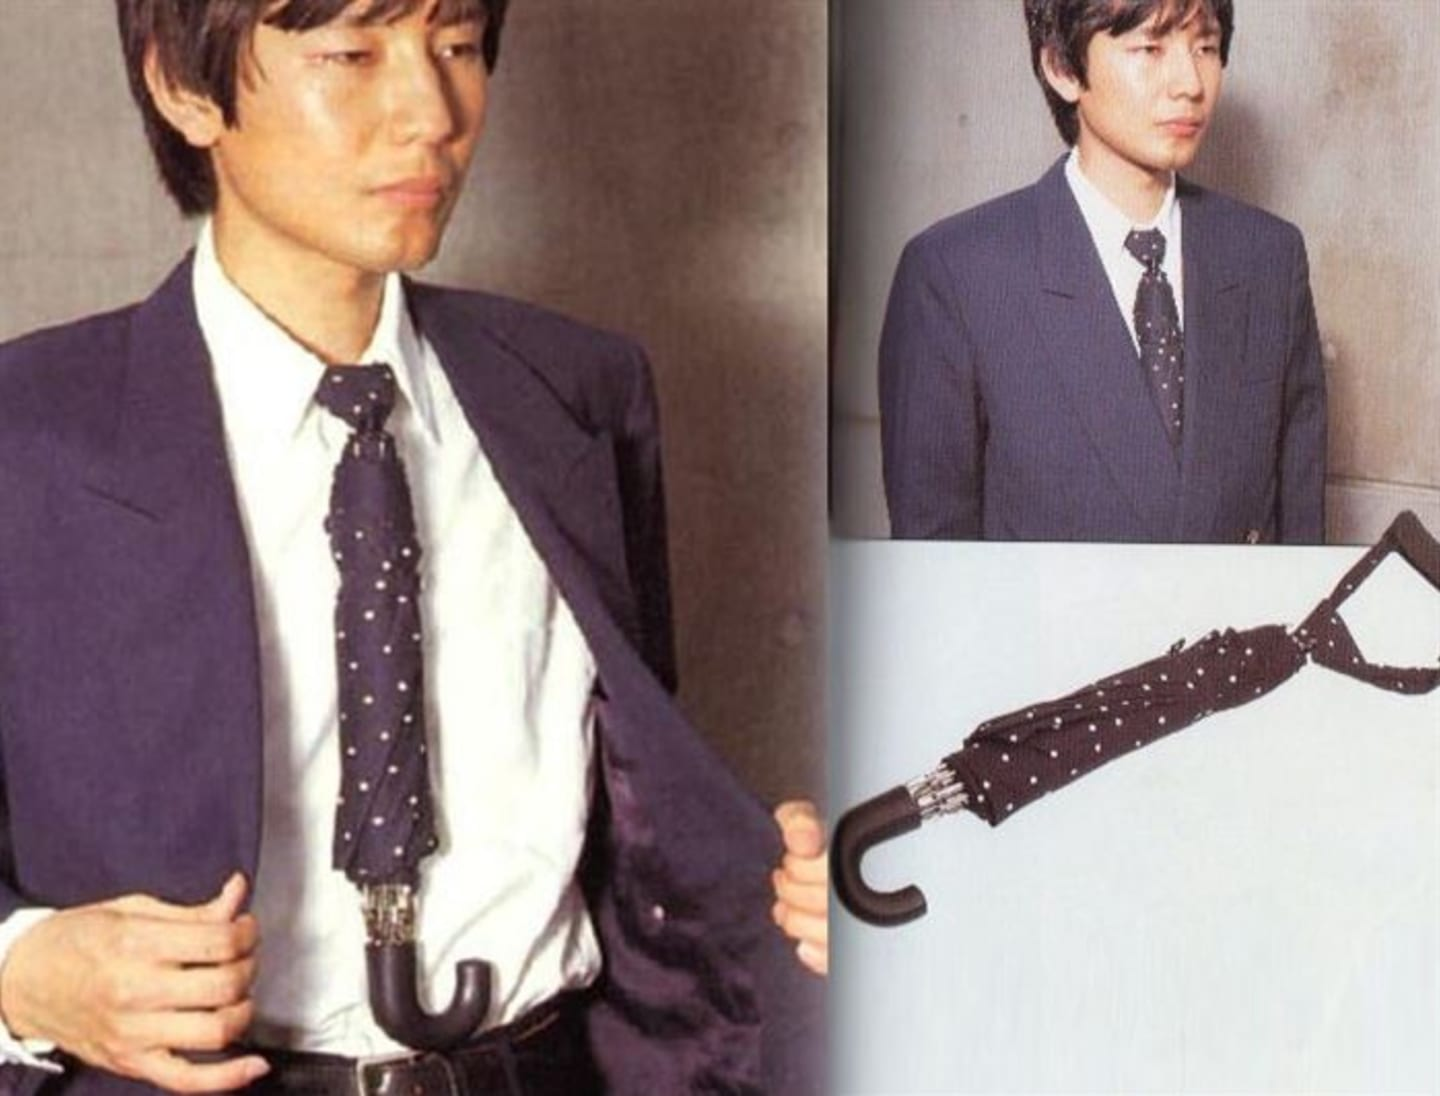 A man in a business suit wears a tie that appears to also be an umbrella. He opens his jacket to reveal an umbrella handle projecting from the end of his tie.